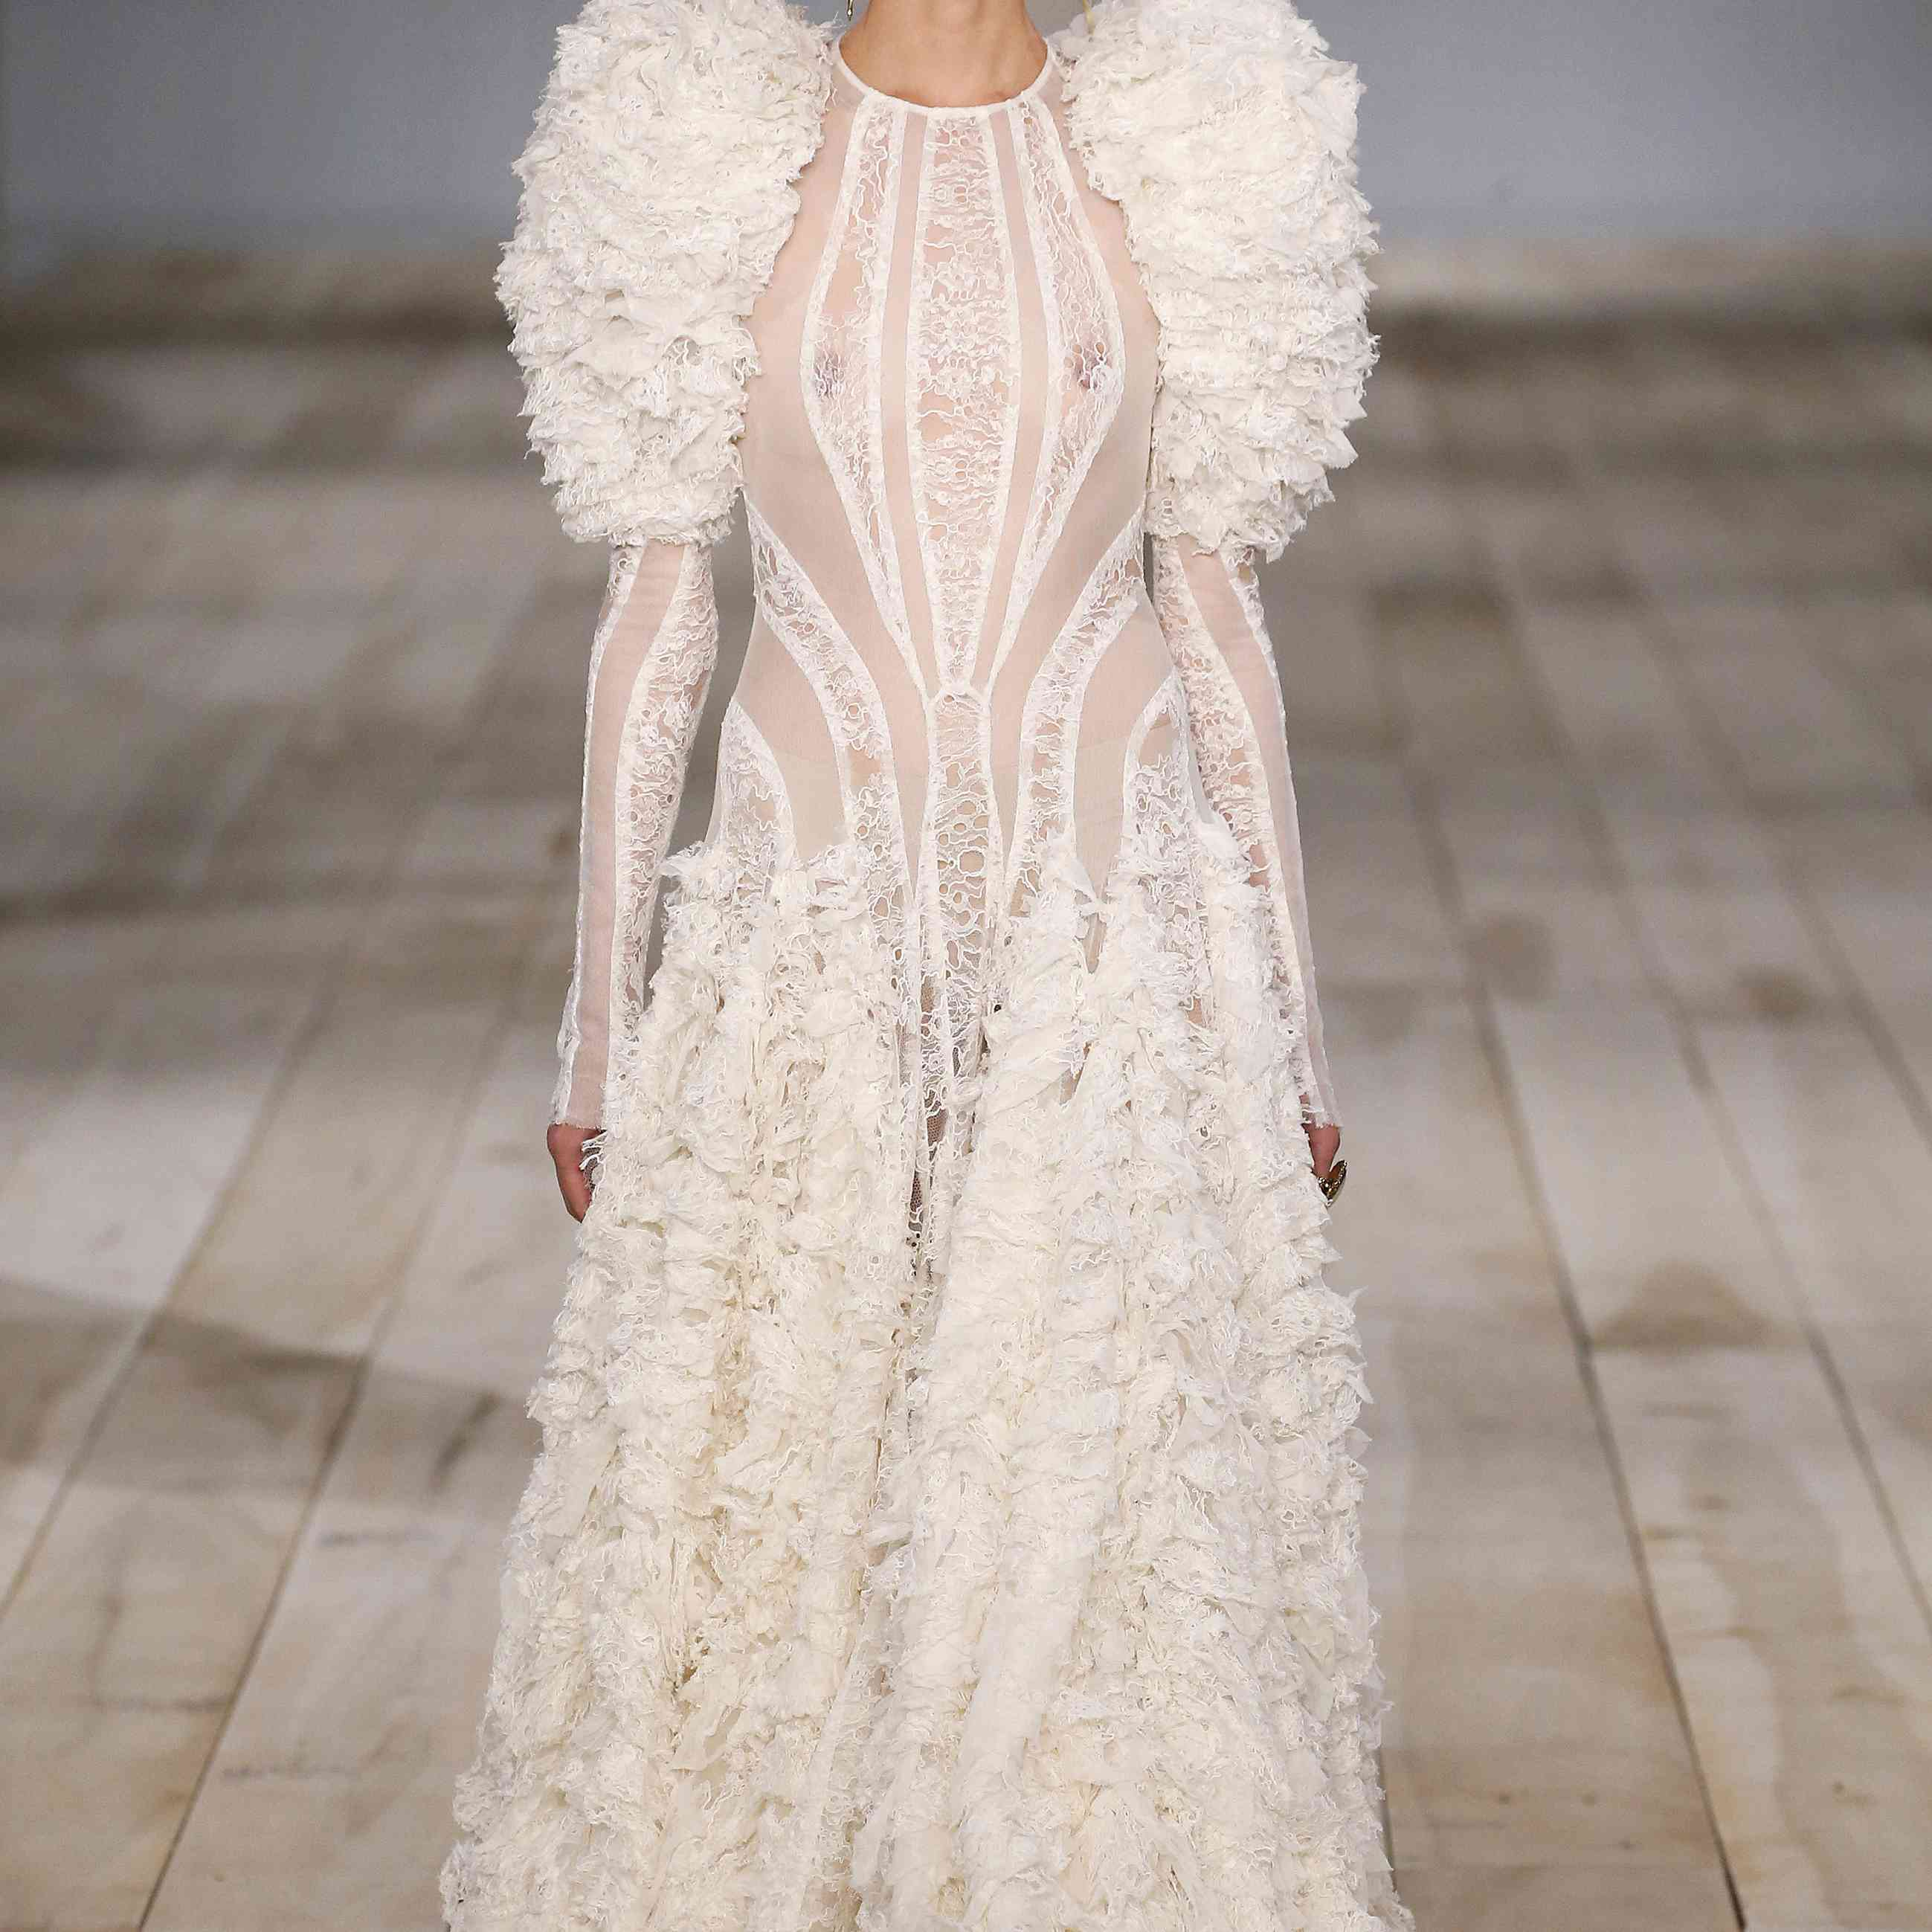 These Paris Fashion Week Looks Are So Bridal We Don't Know